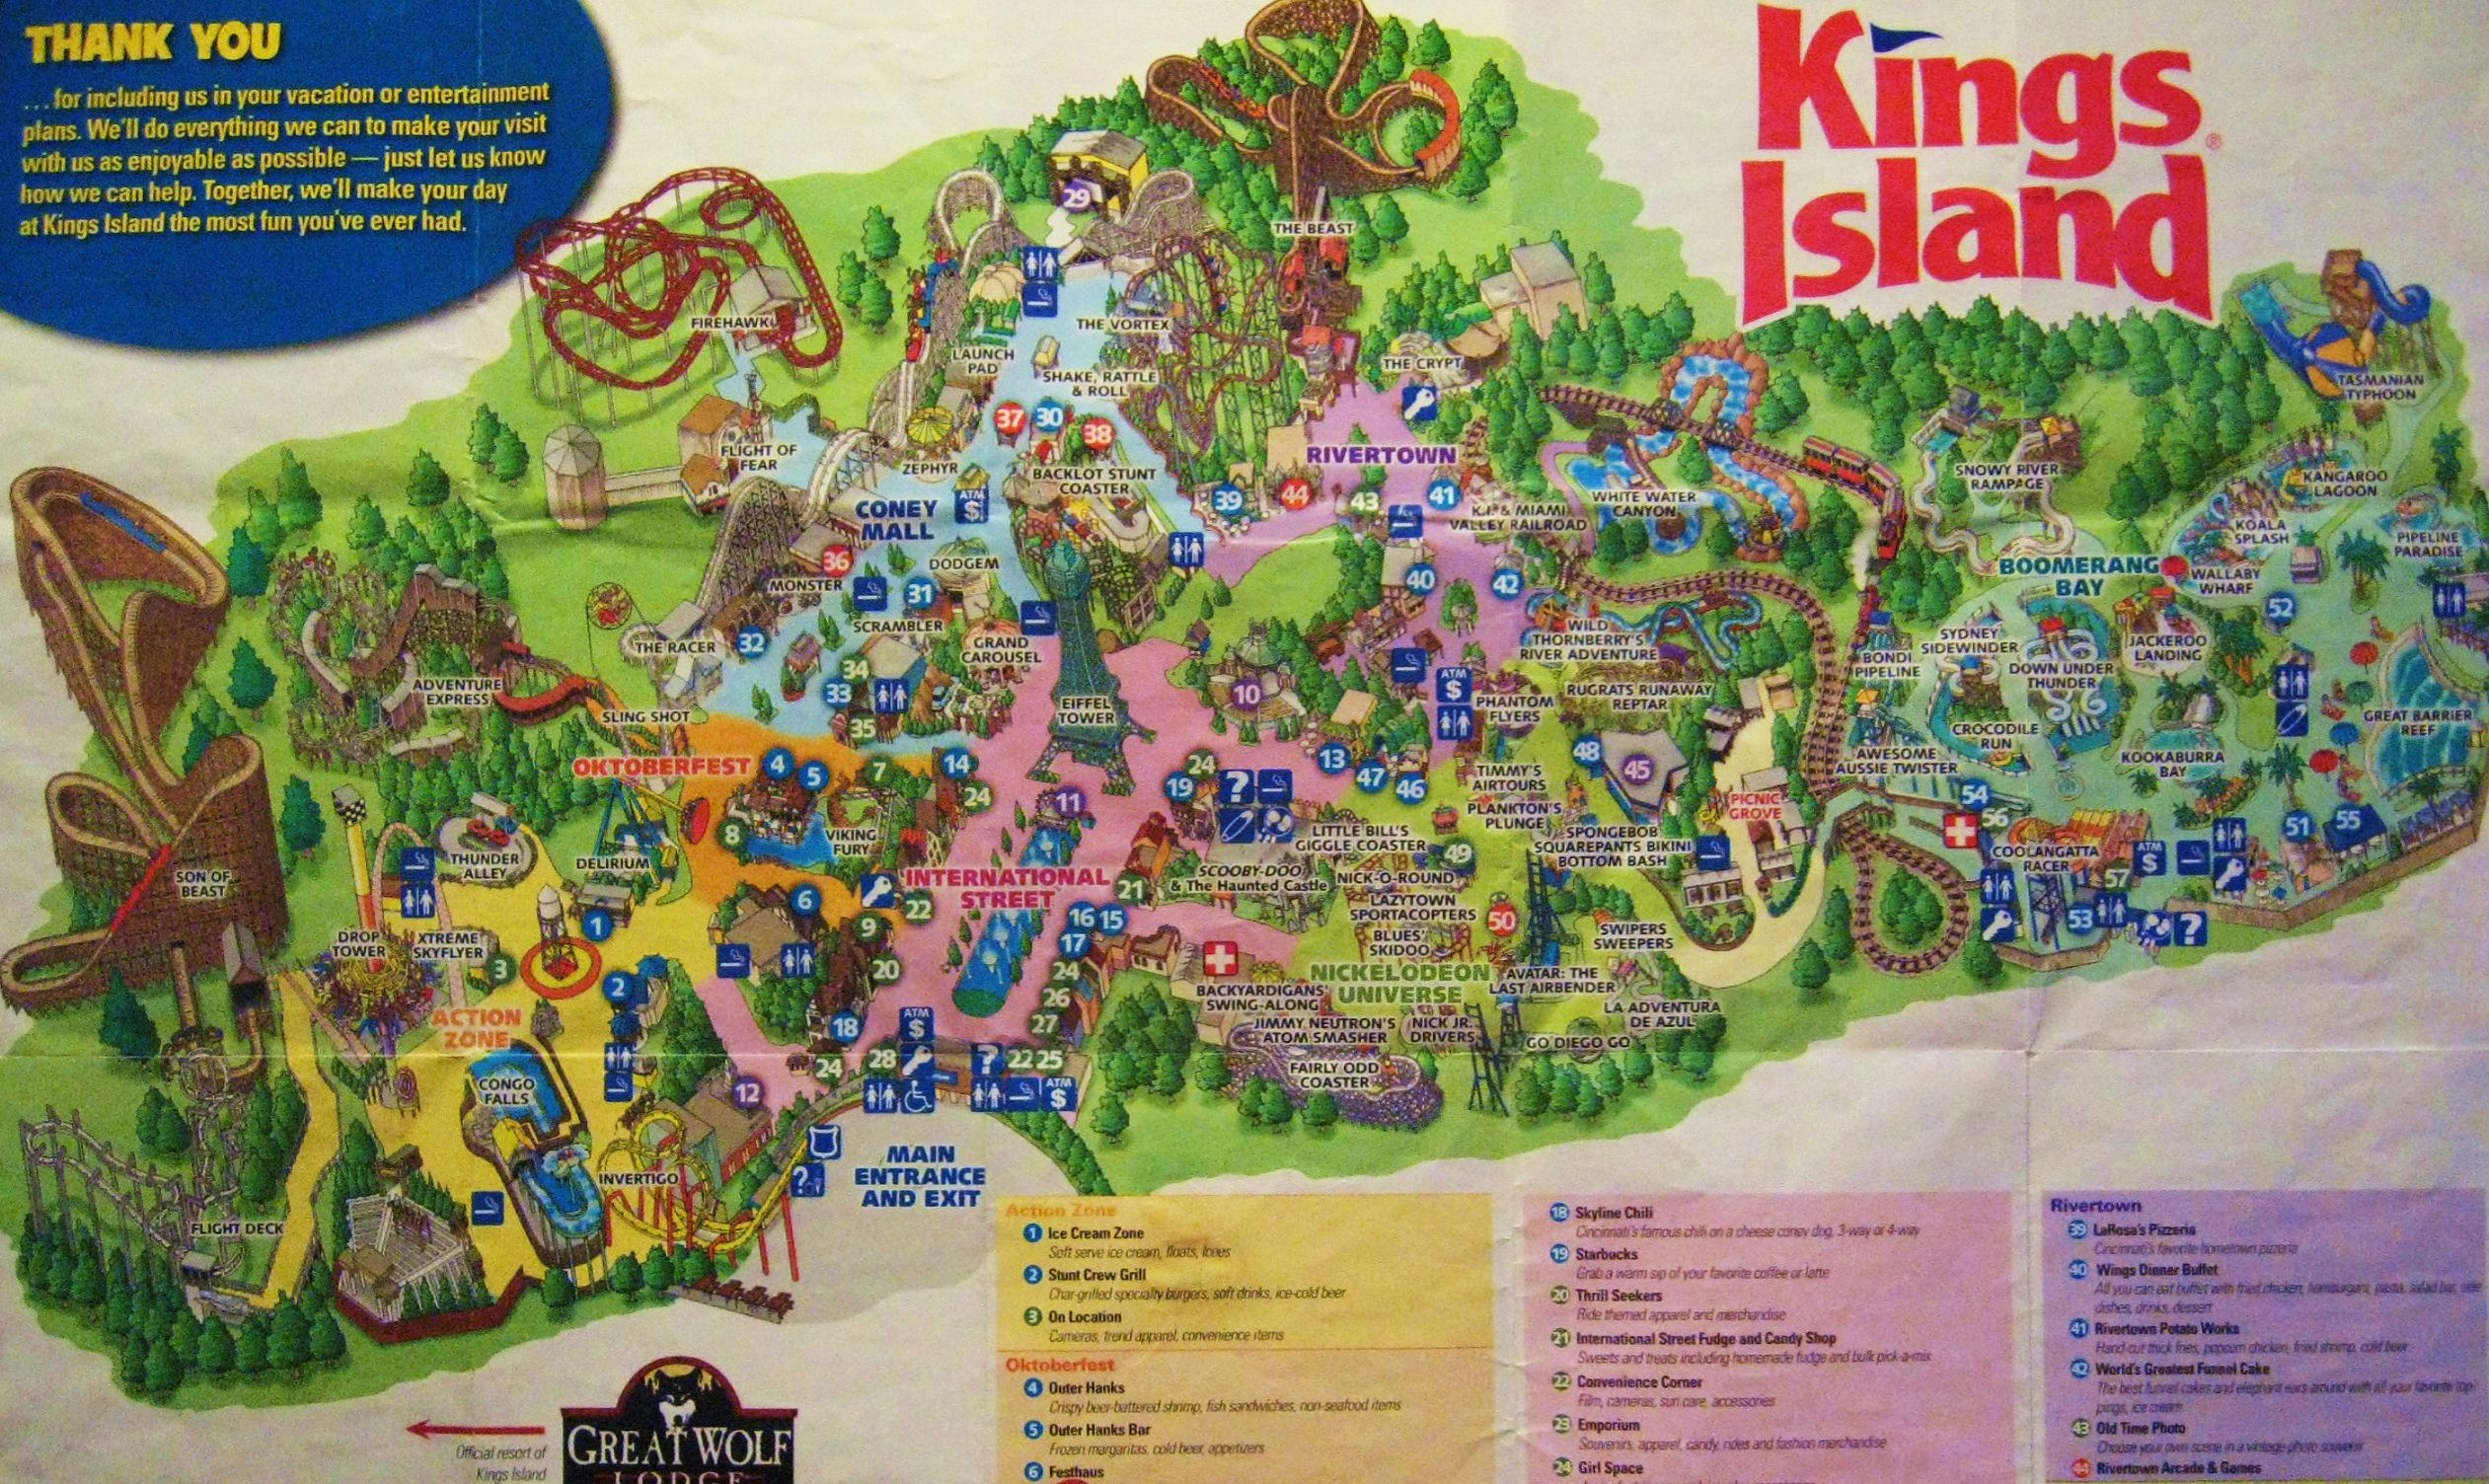 kings island cincinnati oh find this pin and more on theme park